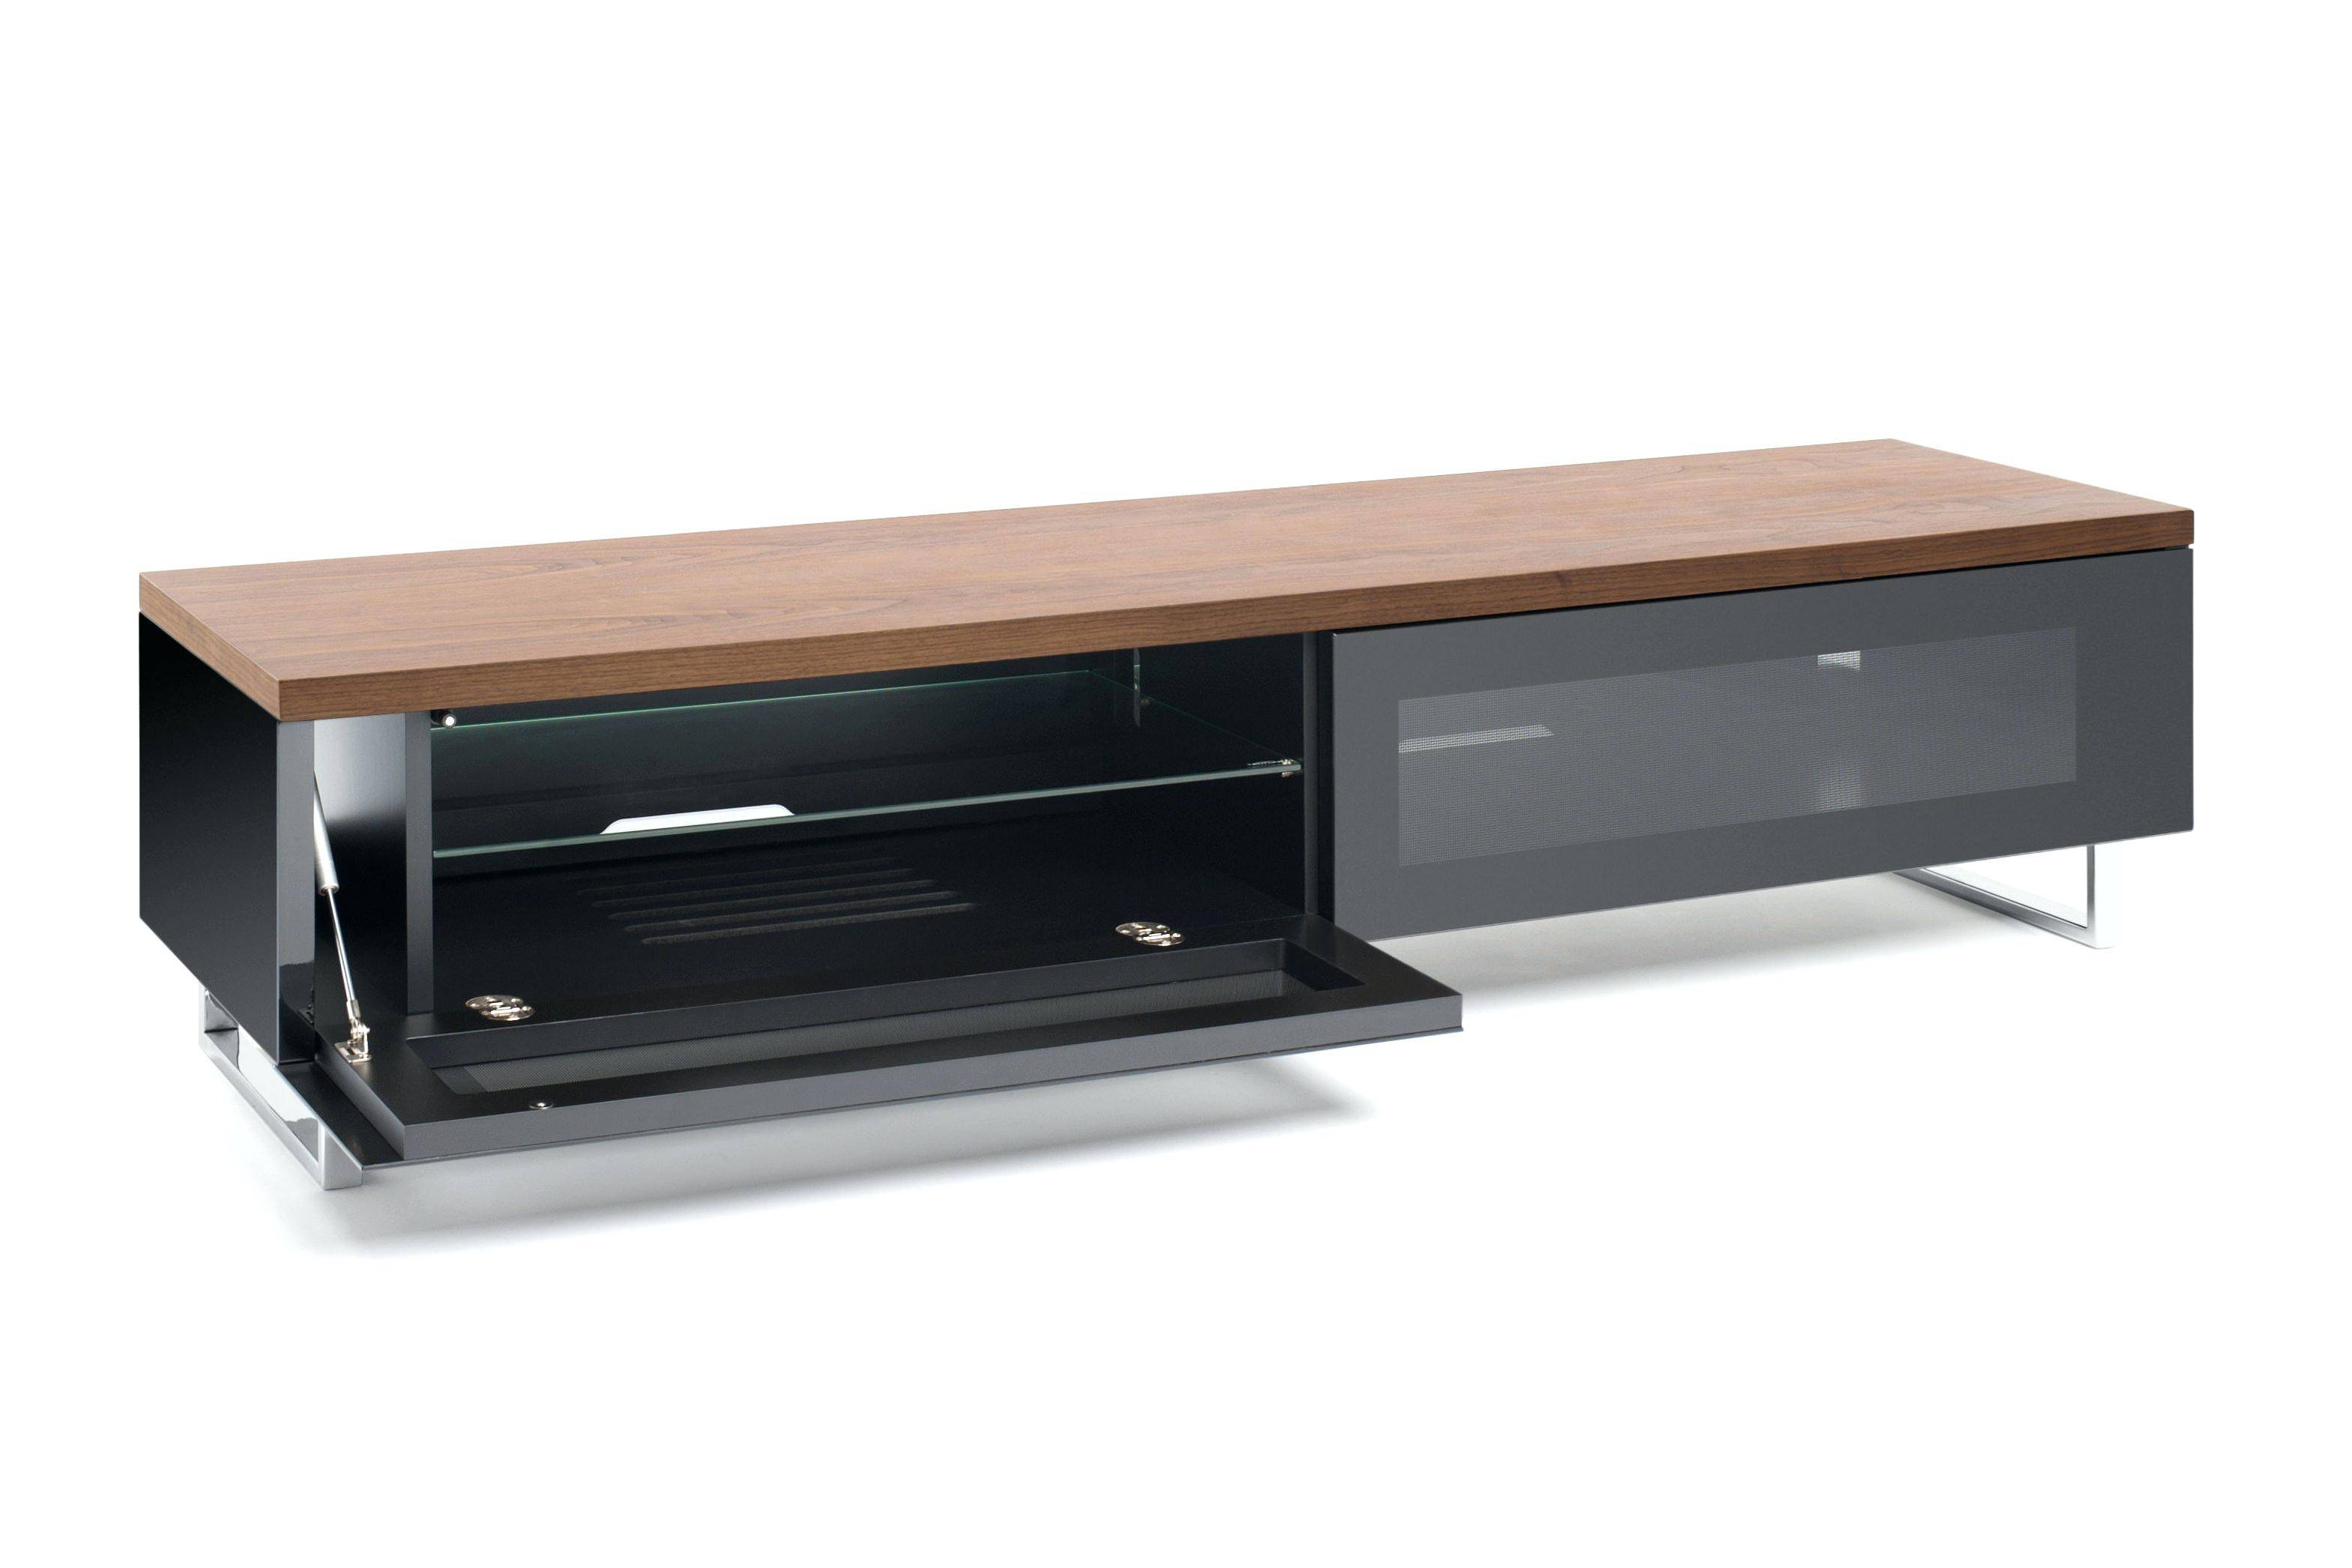 Contemporary Tv Stands 15 The Best Low Profile Contemporary Tv Stands